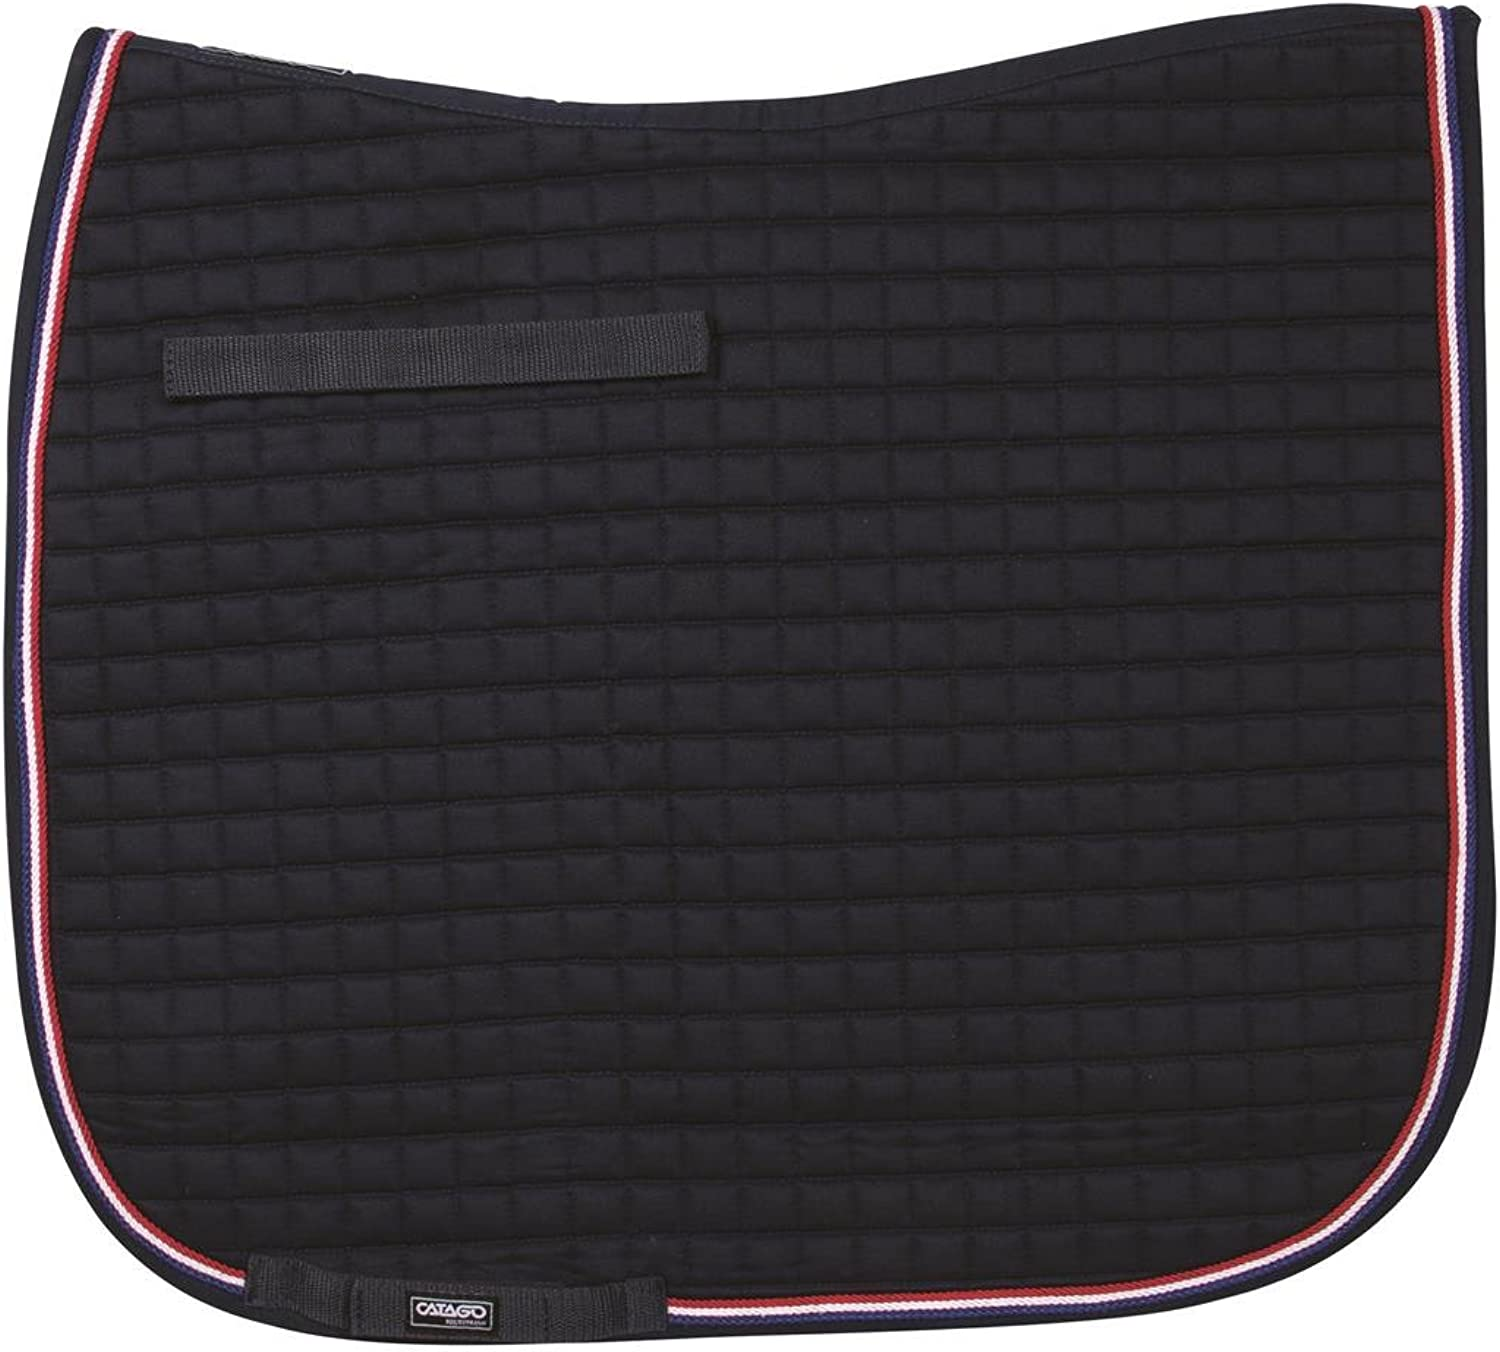 CATAGO Saddlepad Classic Saddle Pad Dr. 17  Navy, dr. 17